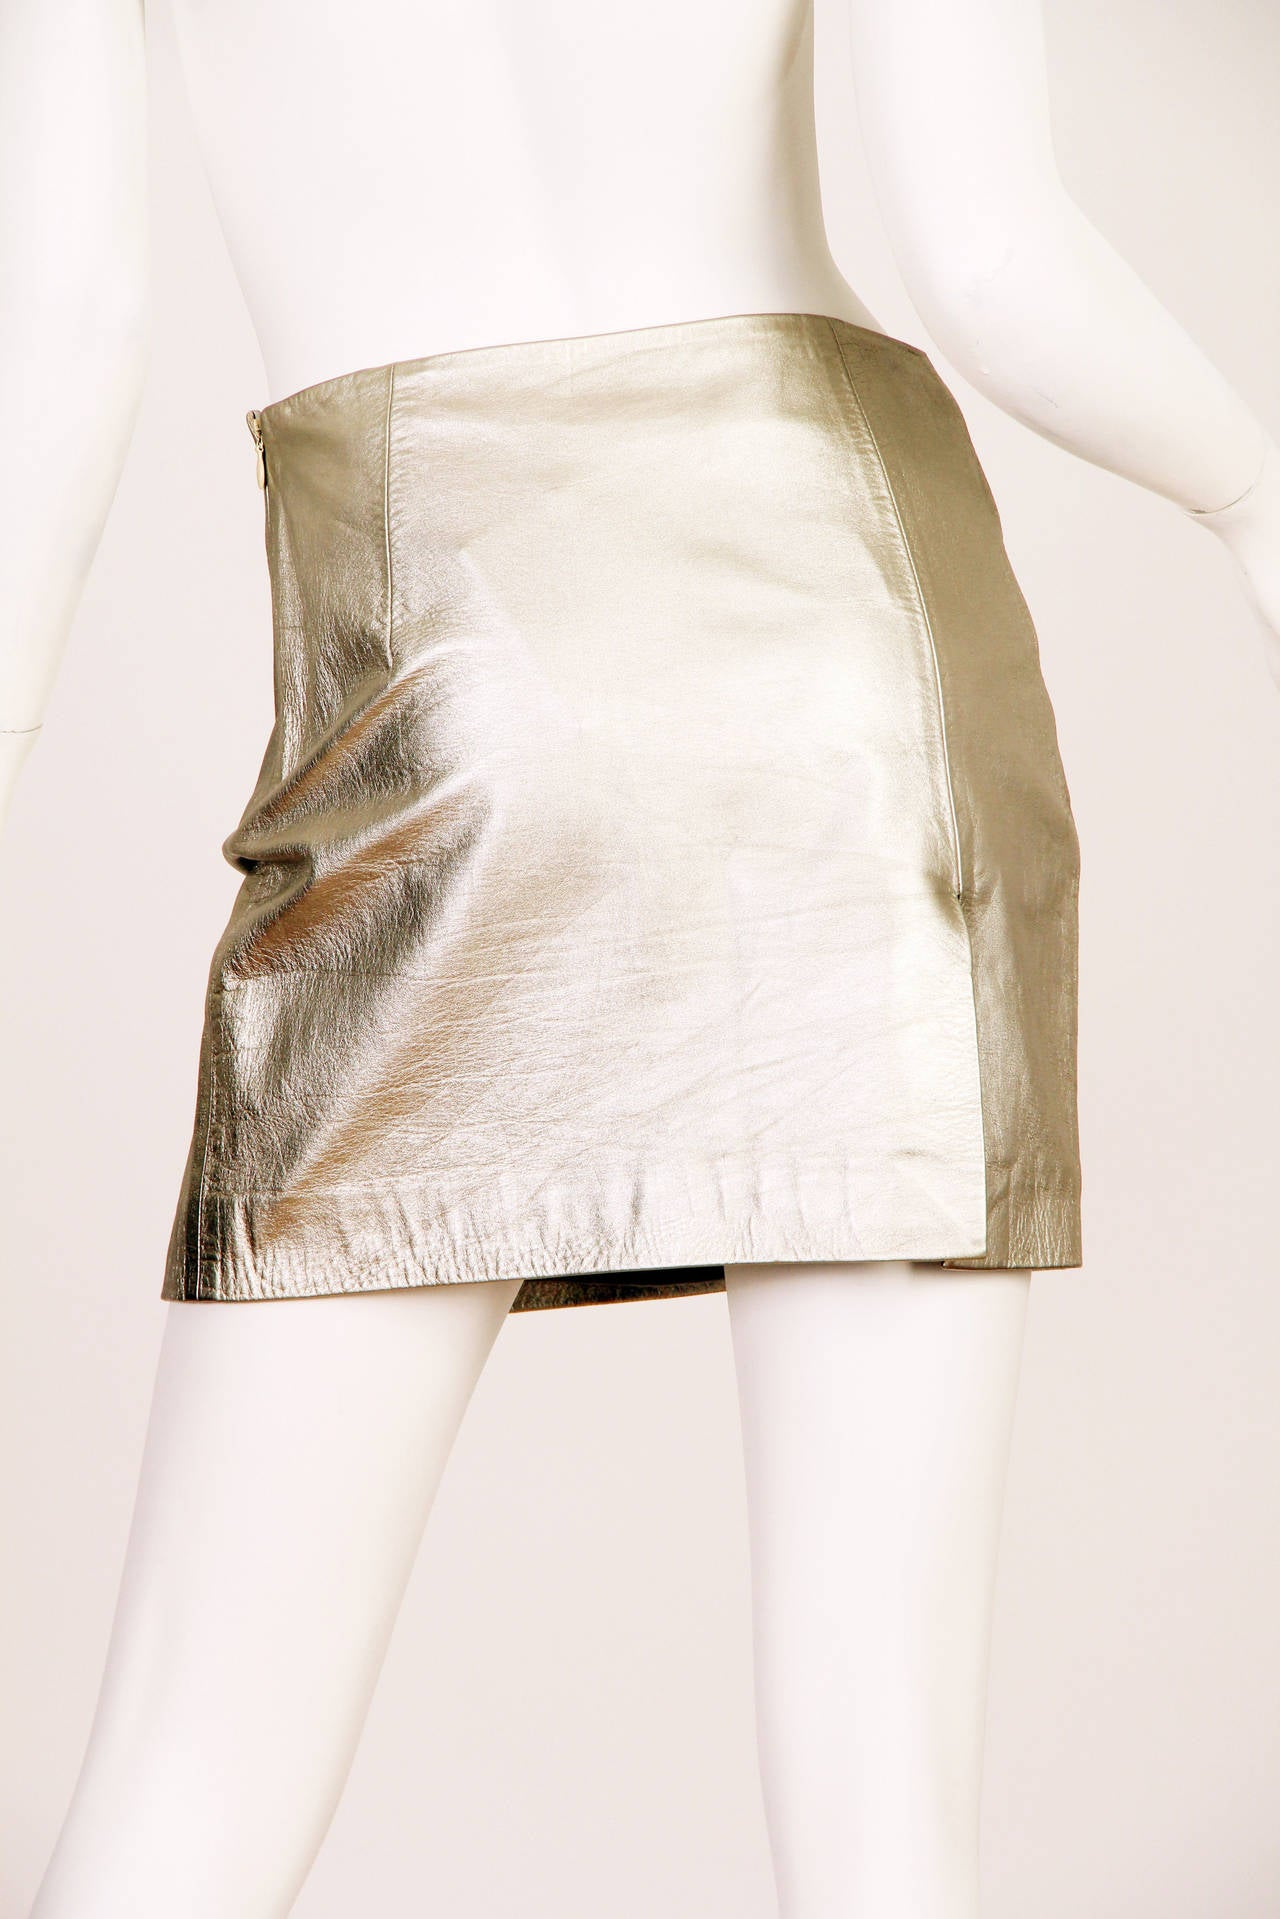 Beige Iconic Documented 1994 Supermodel Gianni Versace Couture Silver Leather Skirt For Sale